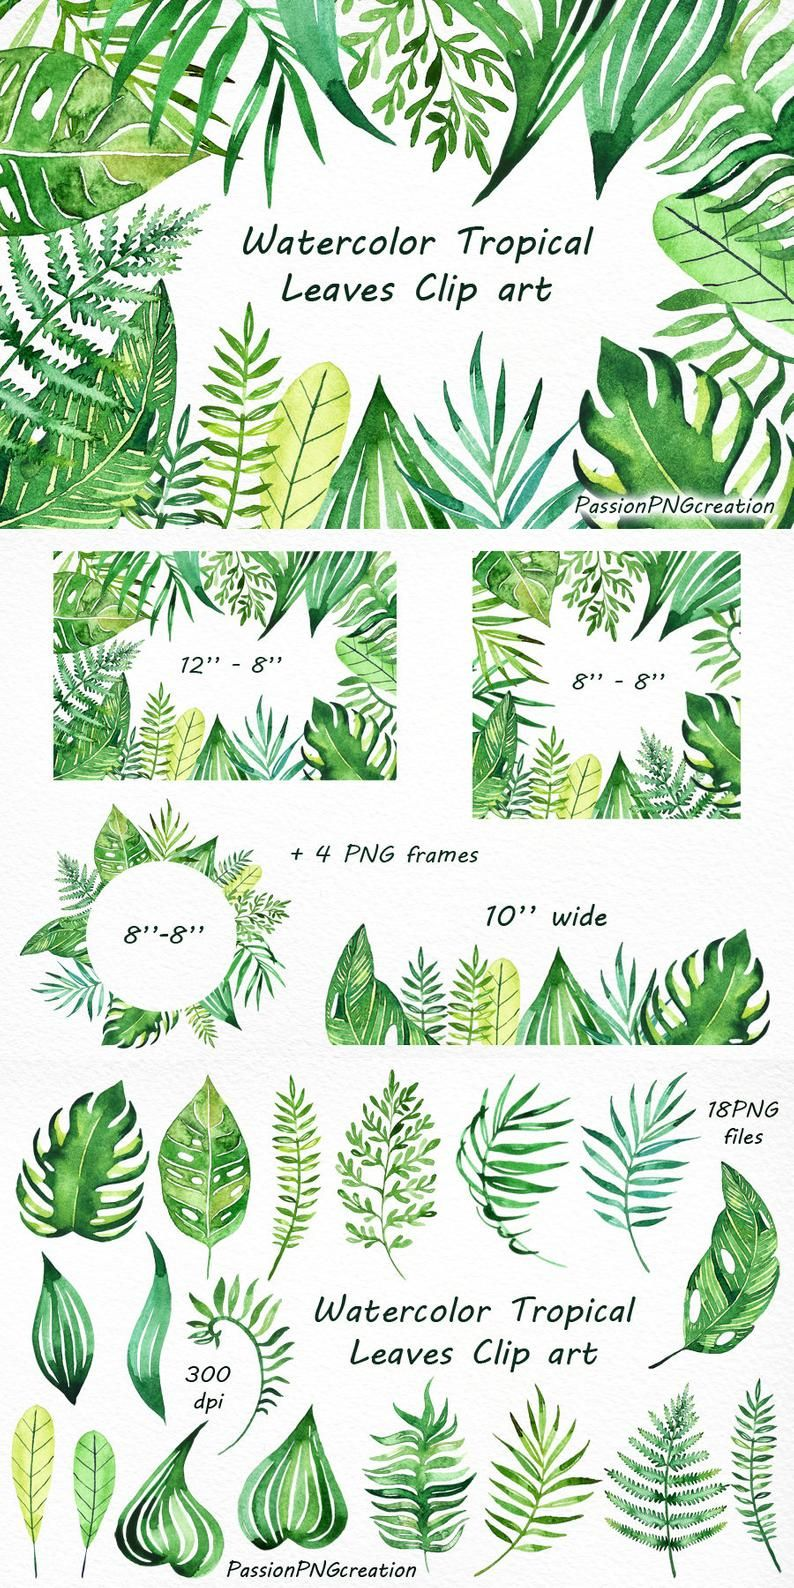 Watercolor Tropical Leaves Clip art, Handpainted clipart, PNG, diy greeting card, floral clipart, for Personal and Commercial Use -   18 tropical plants Watercolor ideas